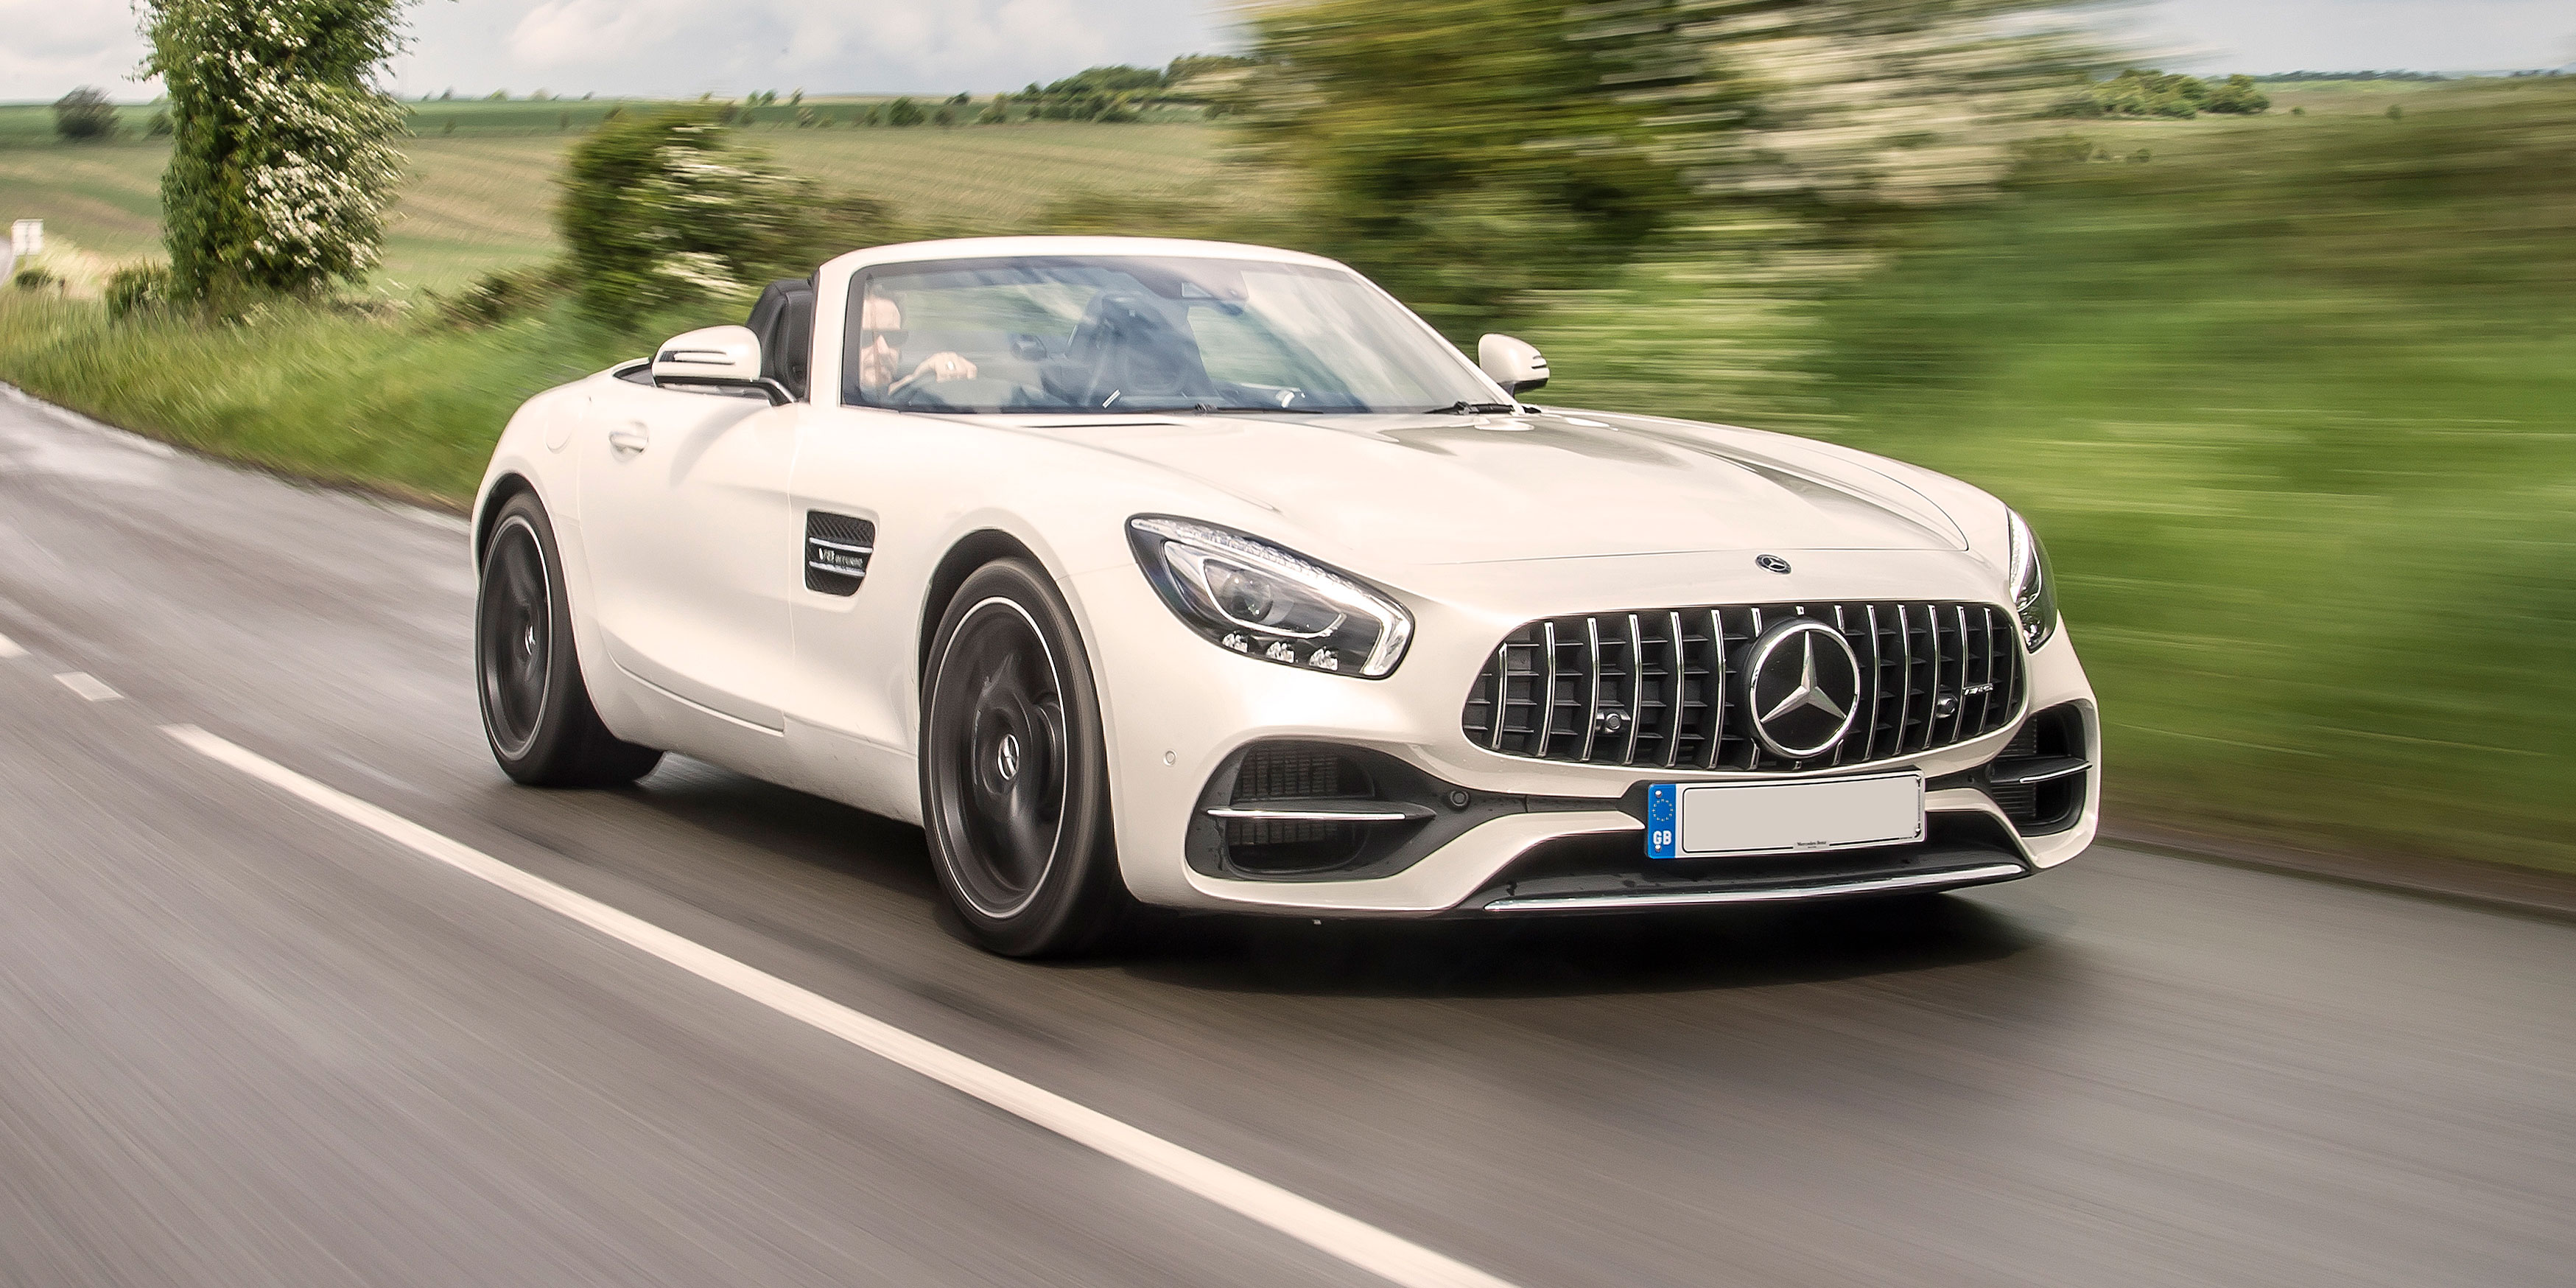 Mercedes Amg Gt Roadster Review 2021 Carwow